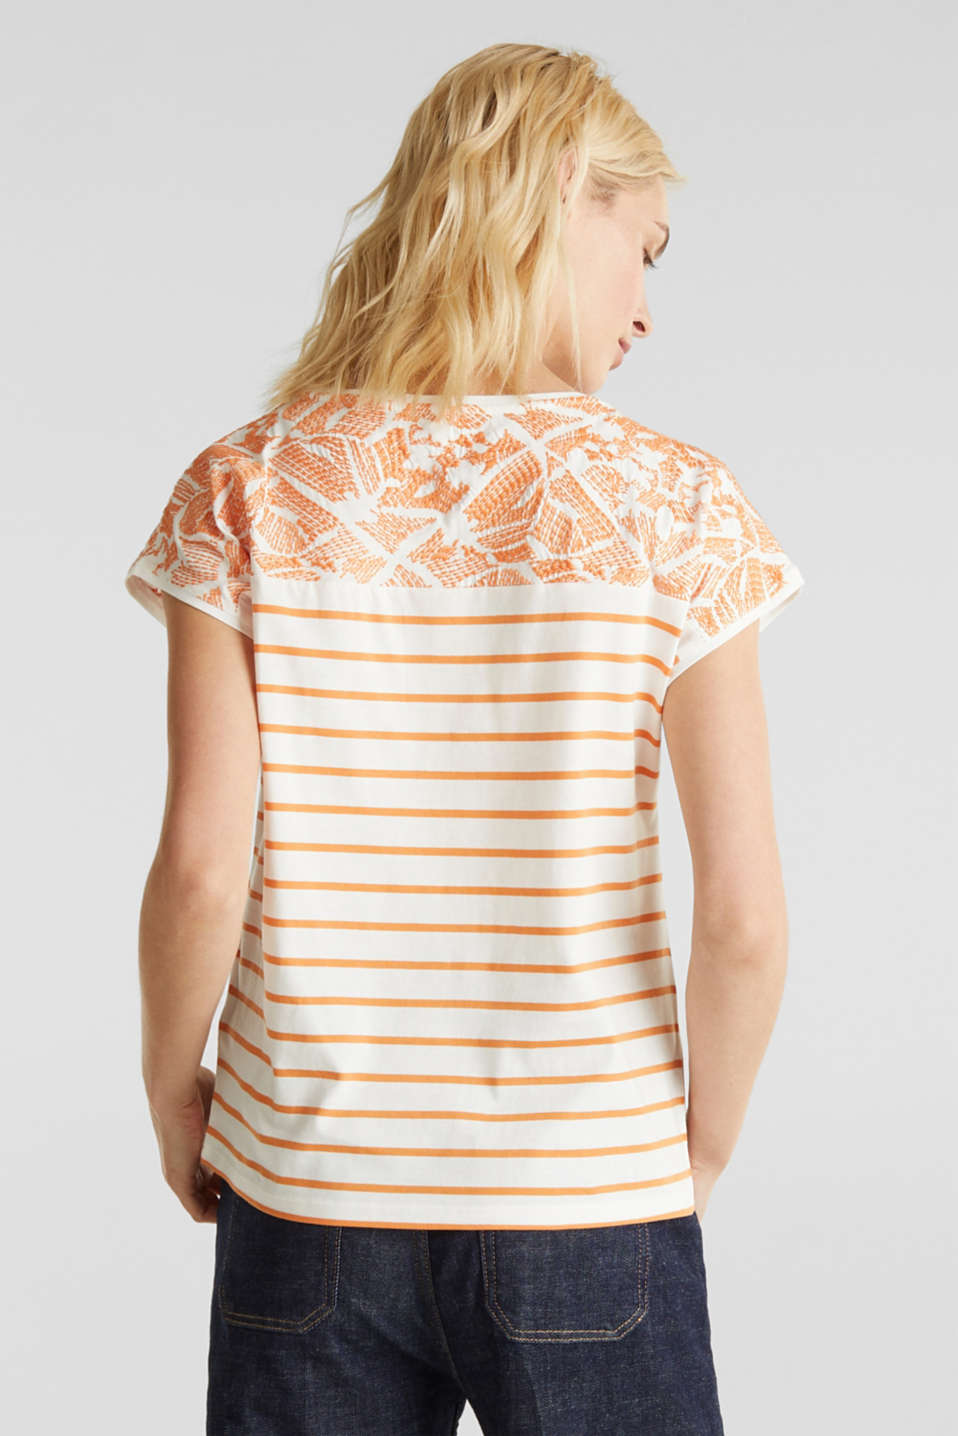 Embroidered top, organic cotton, RUST ORANGE, detail image number 3